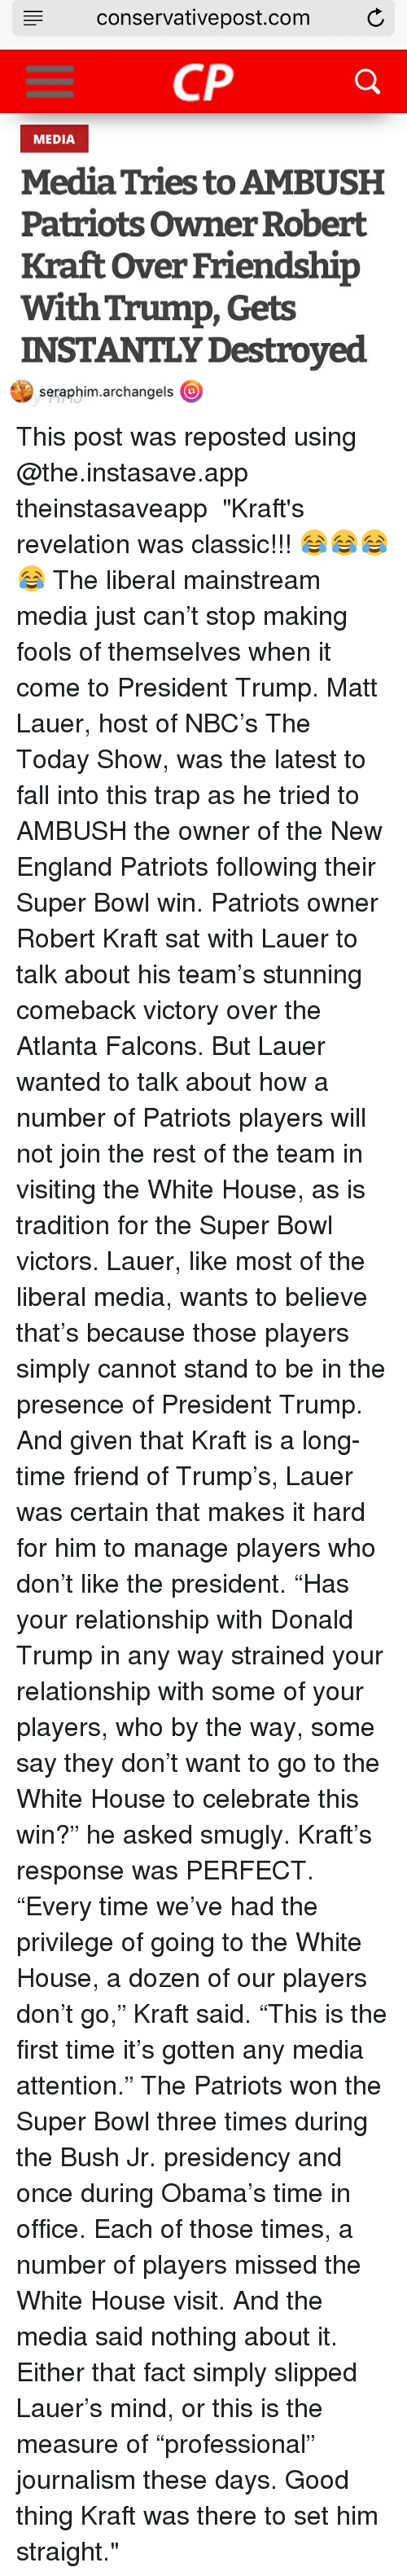 "white-house-visits: conservative post.com C  CP  MEDIA  MediaTries to AMBUSH  Patriots owner Robert  Kraft over Friendship  With Trump, Gets  INSTANTLY Destroyed  seraphim.archangels  (O This post was reposted using @the.instasave.app theinstasaveapp ・・・ ""Kraft's revelation was classic!!! 😂😂😂😂 The liberal mainstream media just can't stop making fools of themselves when it come to President Trump. Matt Lauer, host of NBC's The Today Show, was the latest to fall into this trap as he tried to AMBUSH the owner of the New England Patriots following their Super Bowl win. Patriots owner Robert Kraft sat with Lauer to talk about his team's stunning comeback victory over the Atlanta Falcons. But Lauer wanted to talk about how a number of Patriots players will not join the rest of the team in visiting the White House, as is tradition for the Super Bowl victors. Lauer, like most of the liberal media, wants to believe that's because those players simply cannot stand to be in the presence of President Trump. And given that Kraft is a long-time friend of Trump's, Lauer was certain that makes it hard for him to manage players who don't like the president. ""Has your relationship with Donald Trump in any way strained your relationship with some of your players, who by the way, some say they don't want to go to the White House to celebrate this win?"" he asked smugly. Kraft's response was PERFECT. ""Every time we've had the privilege of going to the White House, a dozen of our players don't go,"" Kraft said. ""This is the first time it's gotten any media attention."" The Patriots won the Super Bowl three times during the Bush Jr. presidency and once during Obama's time in office. Each of those times, a number of players missed the White House visit. And the media said nothing about it. Either that fact simply slipped Lauer's mind, or this is the measure of ""professional"" journalism these days. Good thing Kraft was there to set him straight."""